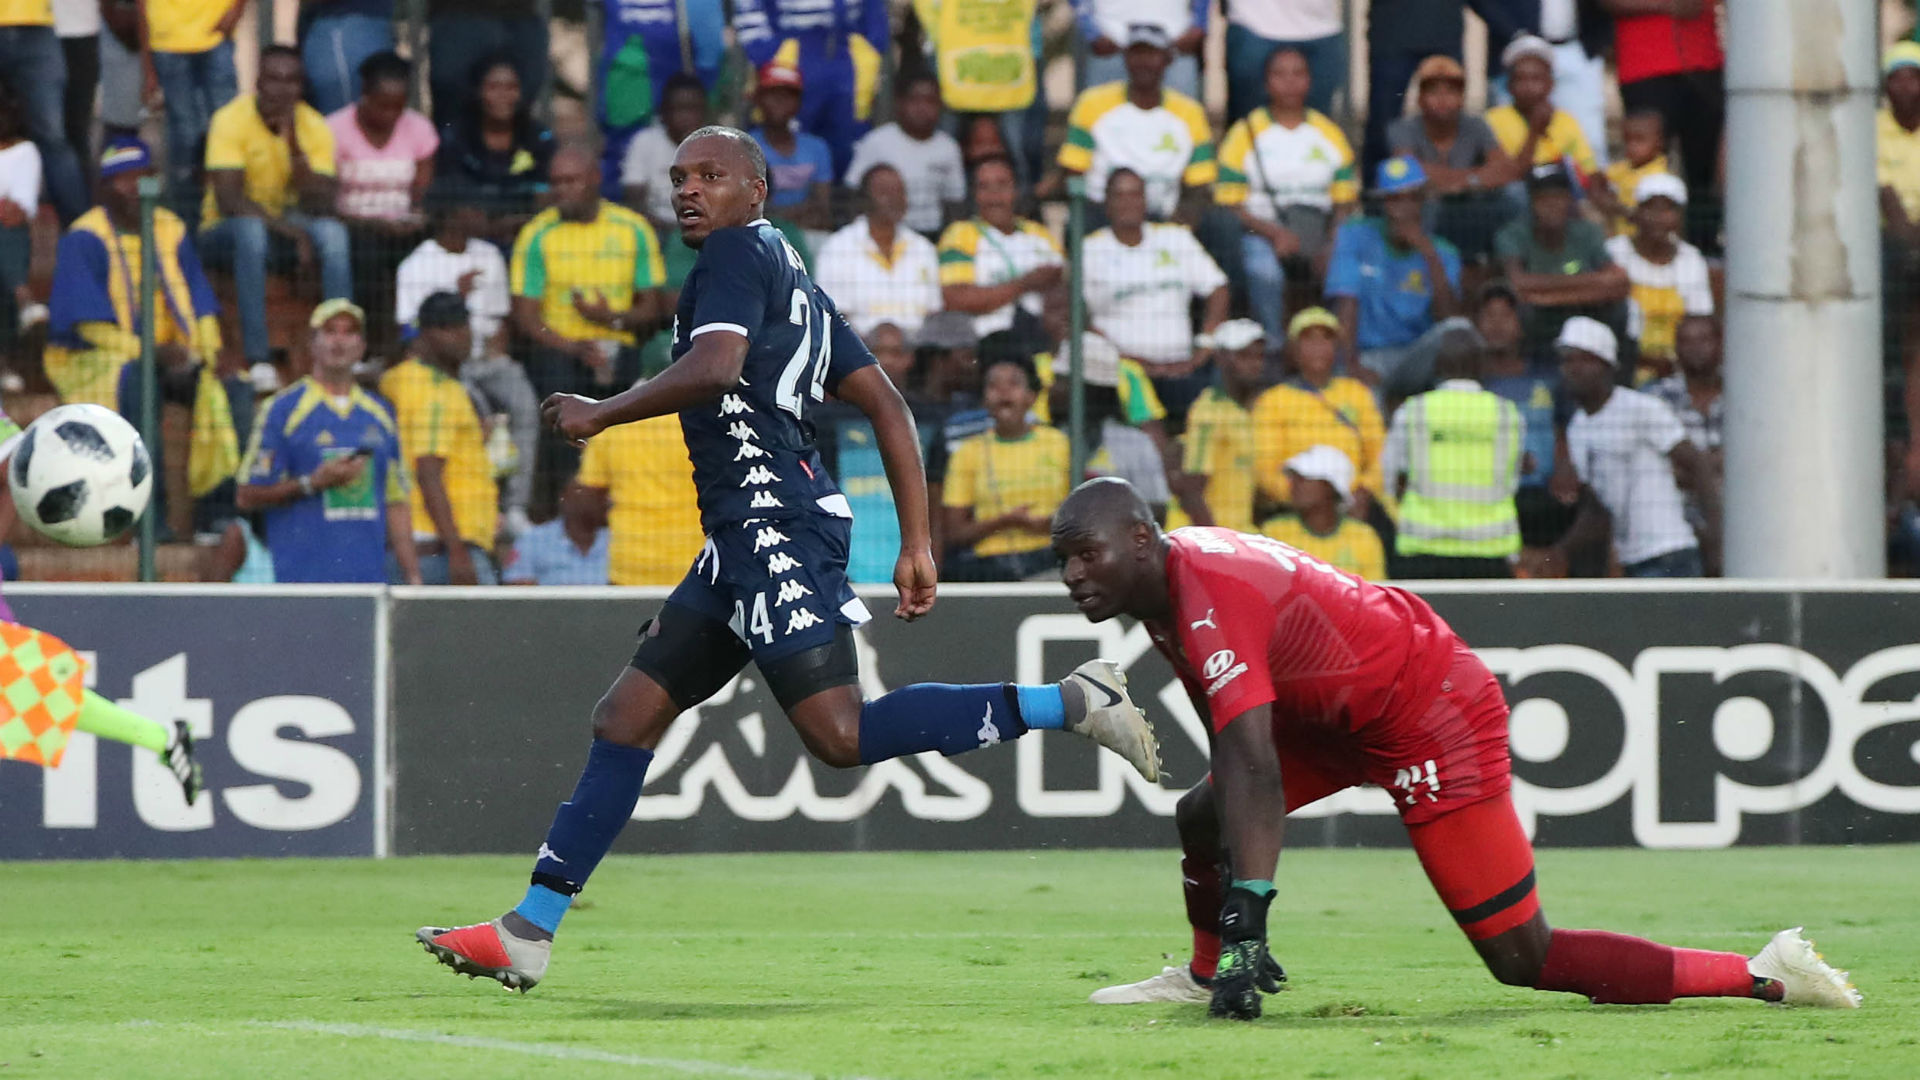 Nedbank Cup: Motupa, Hotto and five Bidvest Wits players who could stop Mamelodi Sundowns